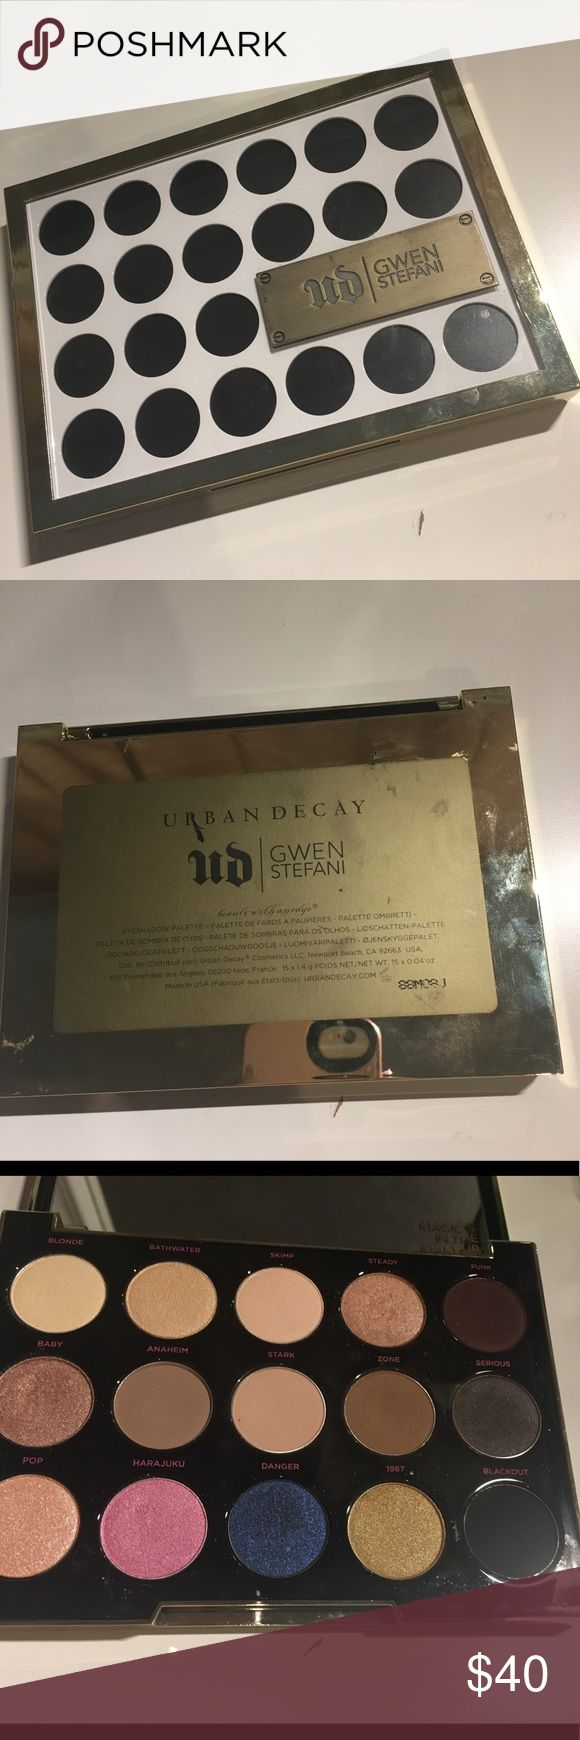 Urban Decay Gwen Stefani Palette Rarely used / some colors haven't even been touched / Authentic / no trades / reasonable offers considered / no PayPal Urban Decay Makeup Eyeshadow